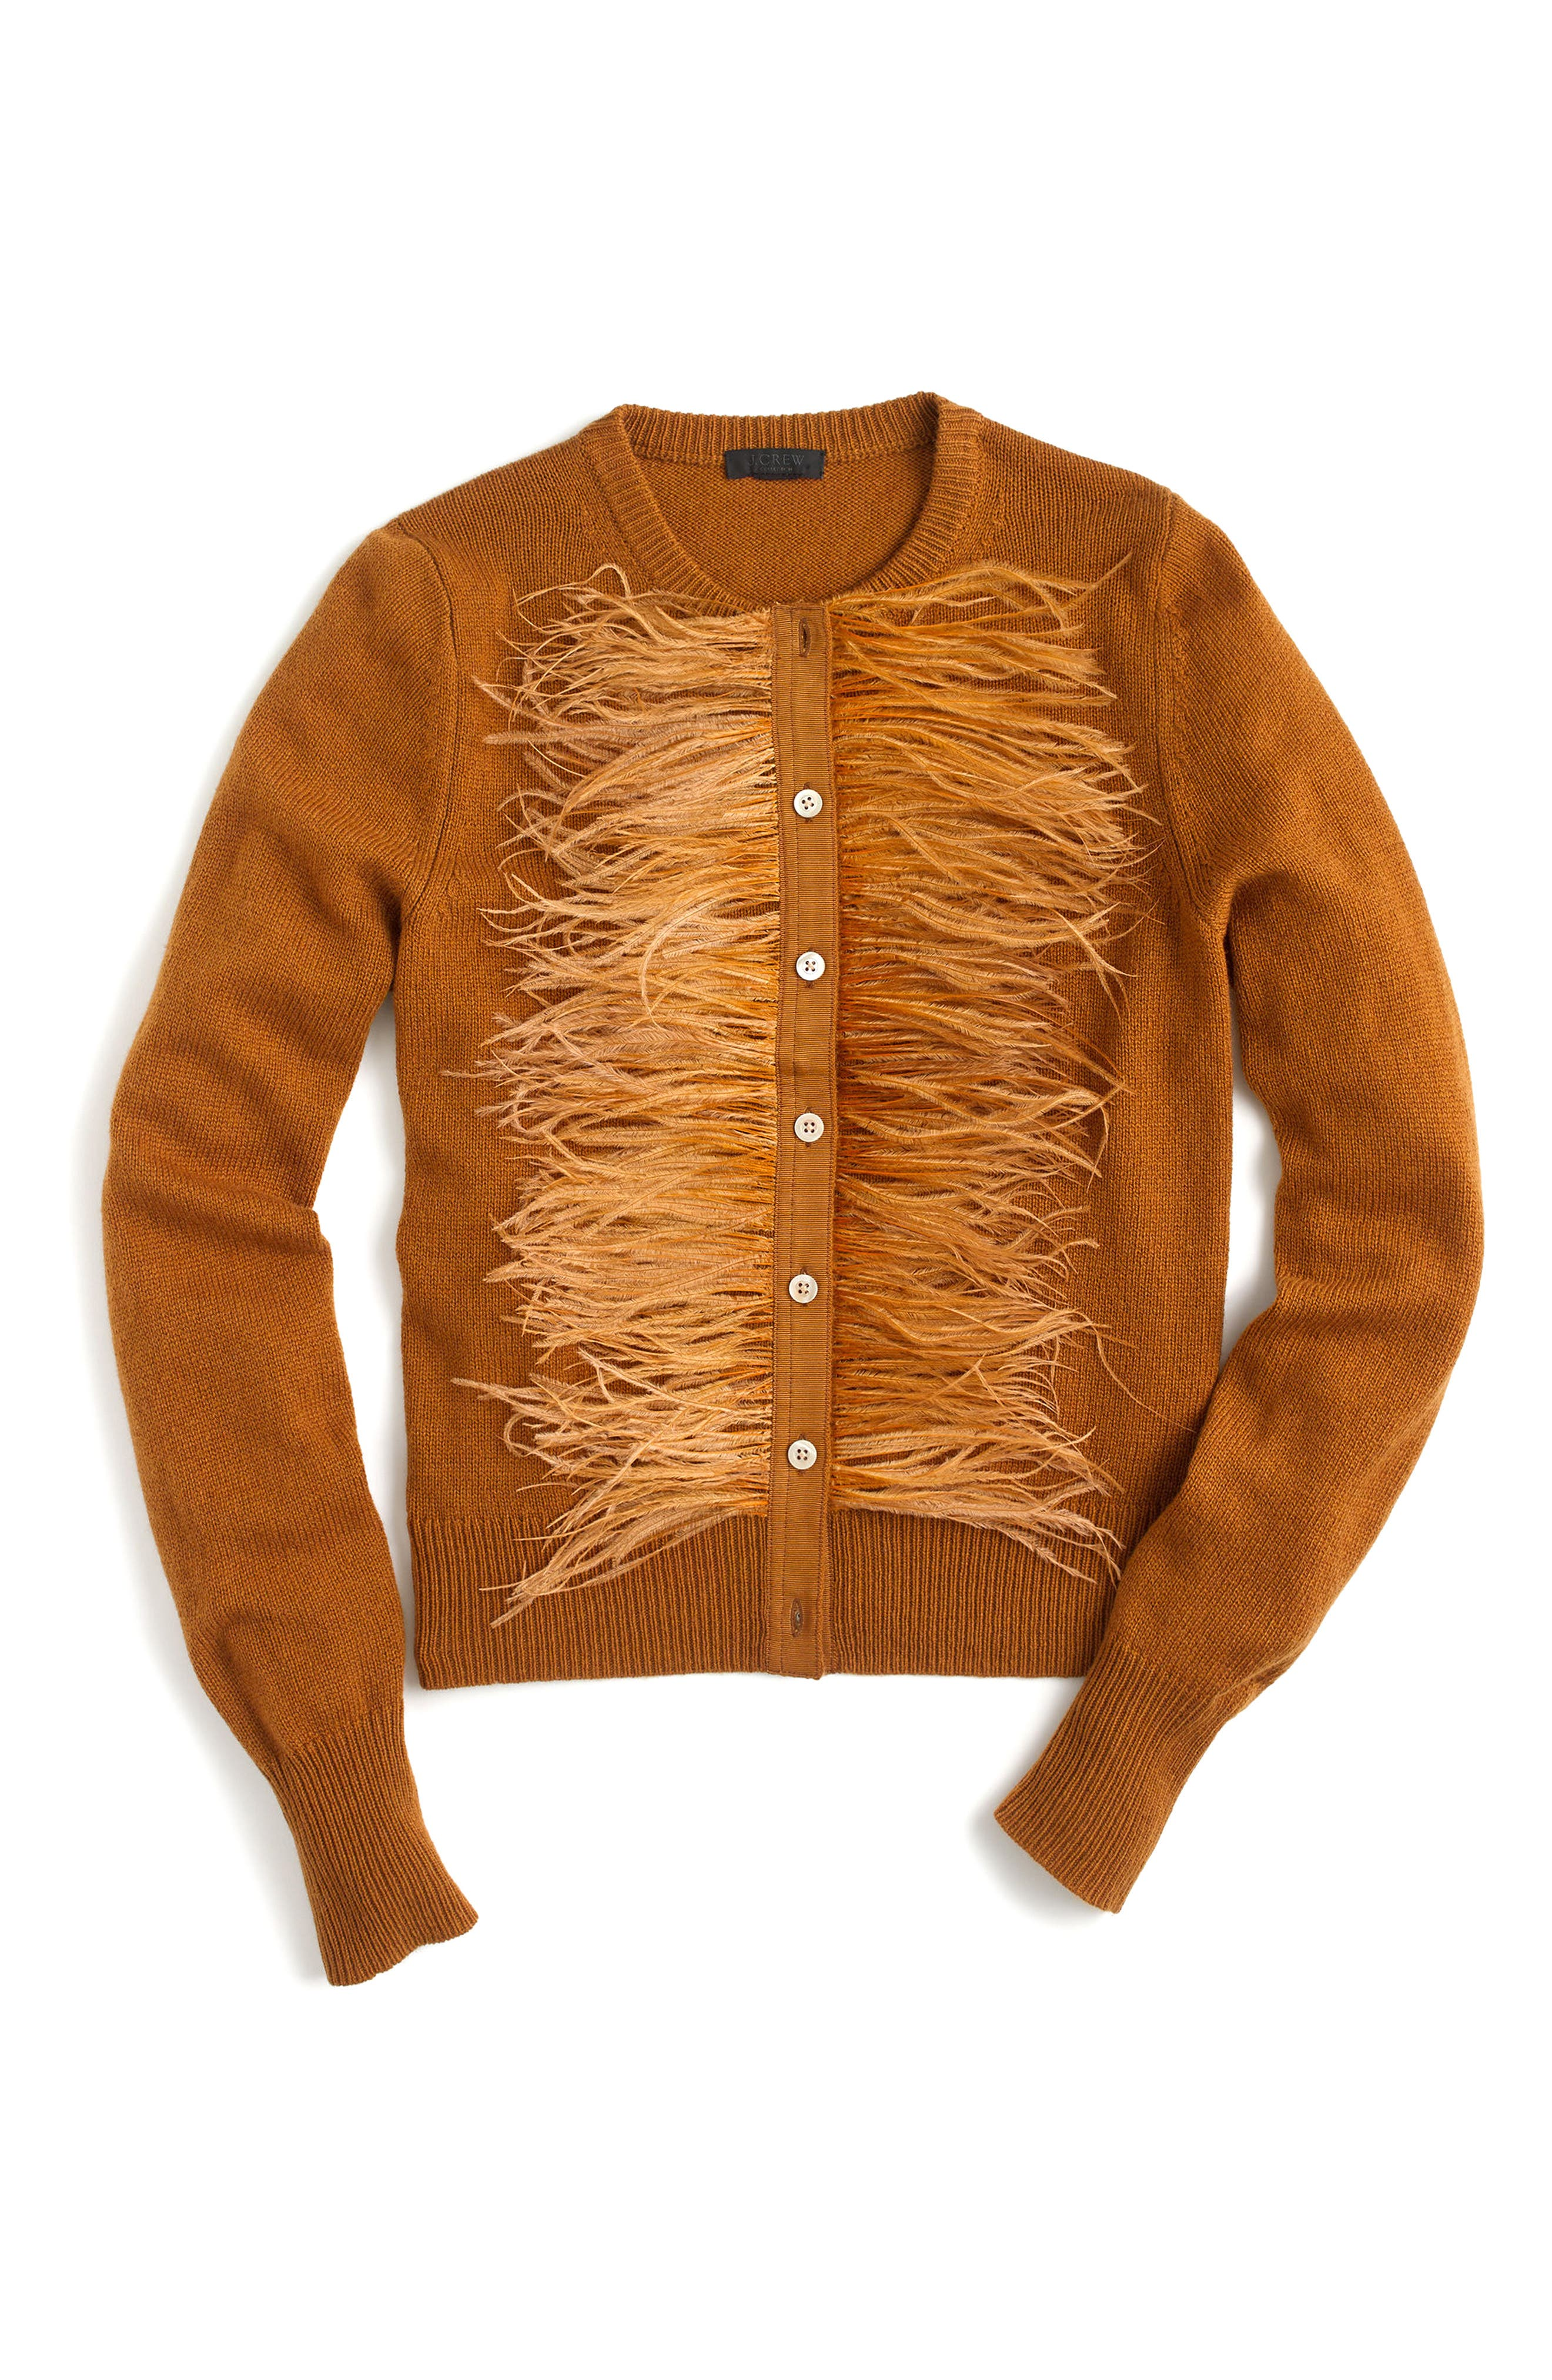 Alternate Image 1 Selected - J.Crew Faux Feather Wool Blend Cardigan